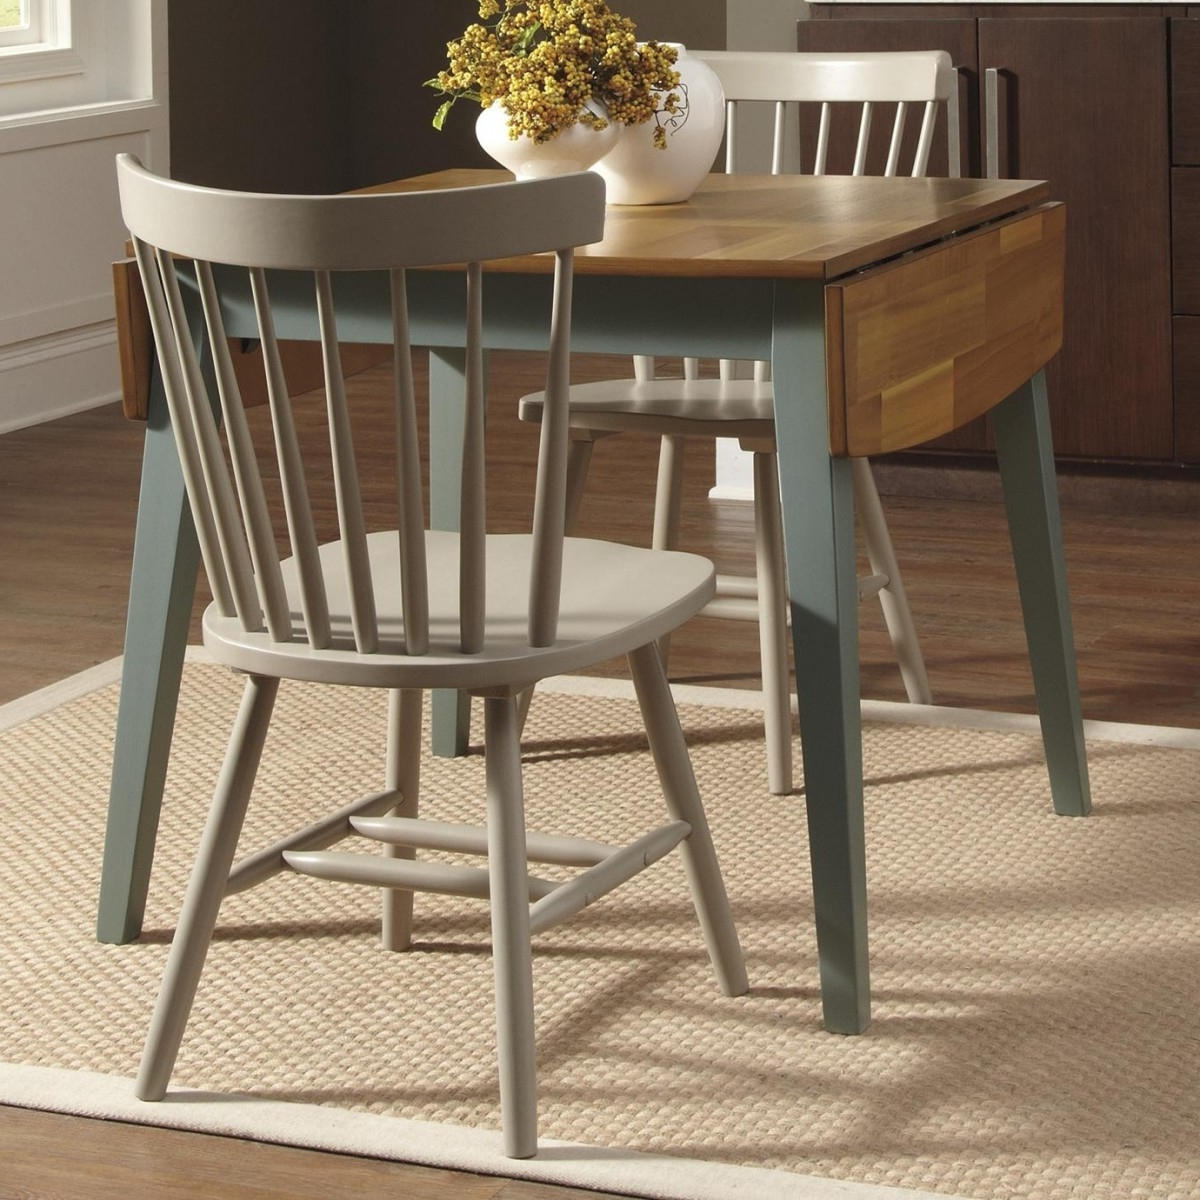 Contemporary Drop Leaf Kitchen Table Set Dining E Mbox Com With Regard To Most Popular Salvaged Black Shayne Drop Leaf Kitchen Tables (View 20 of 25)